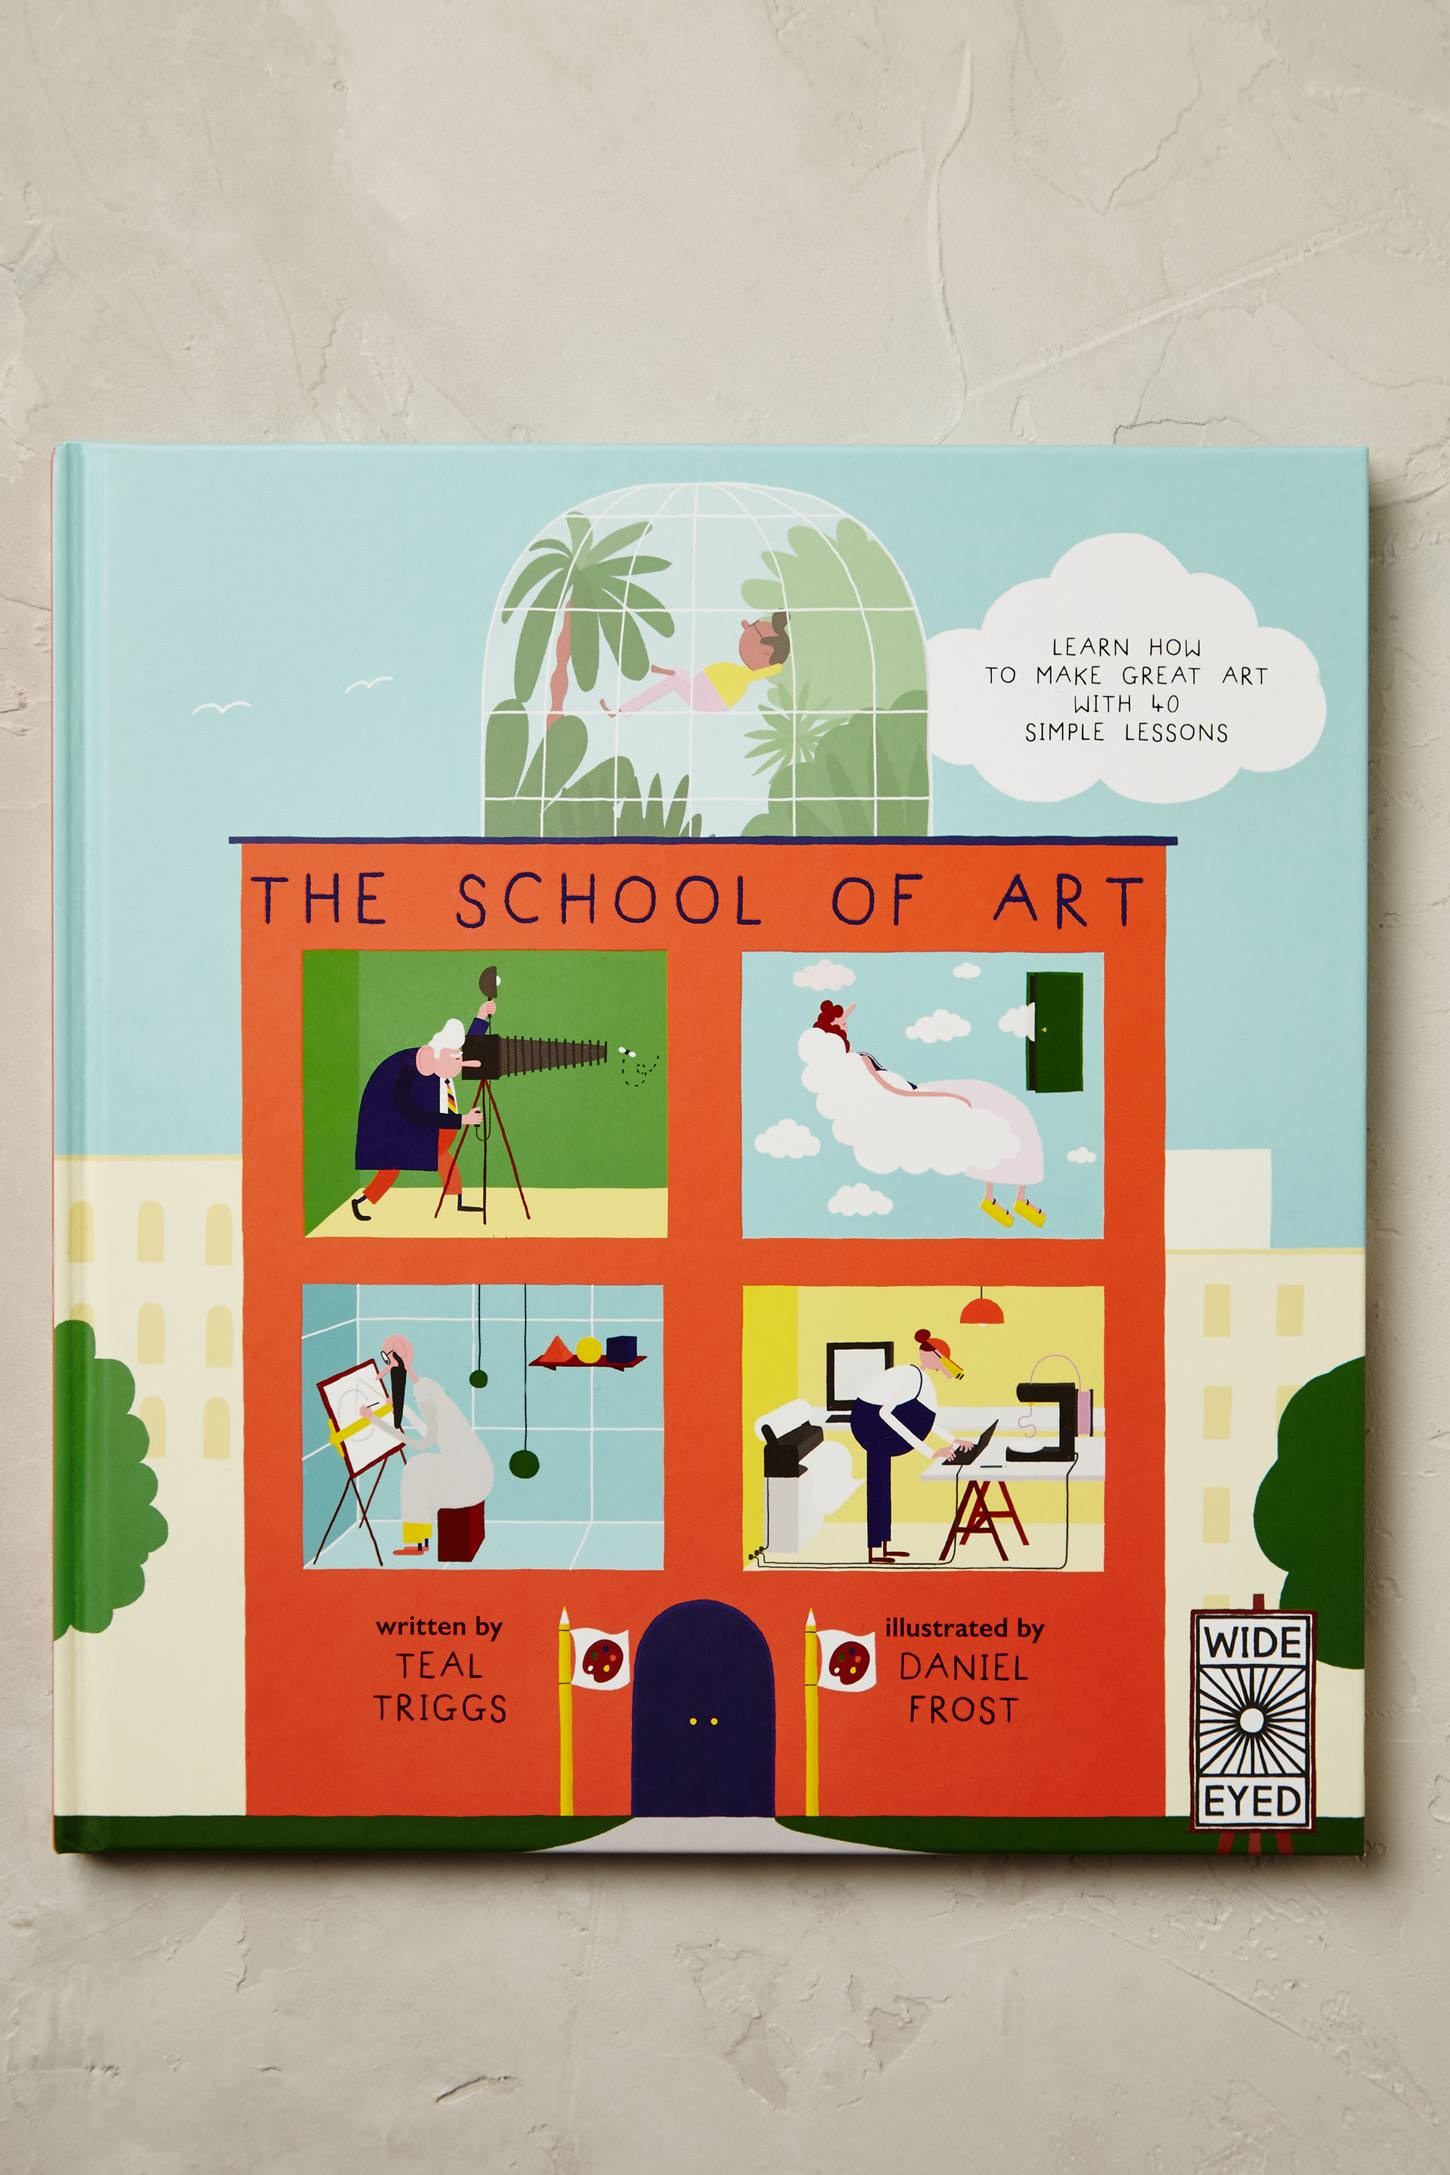 The School of Art